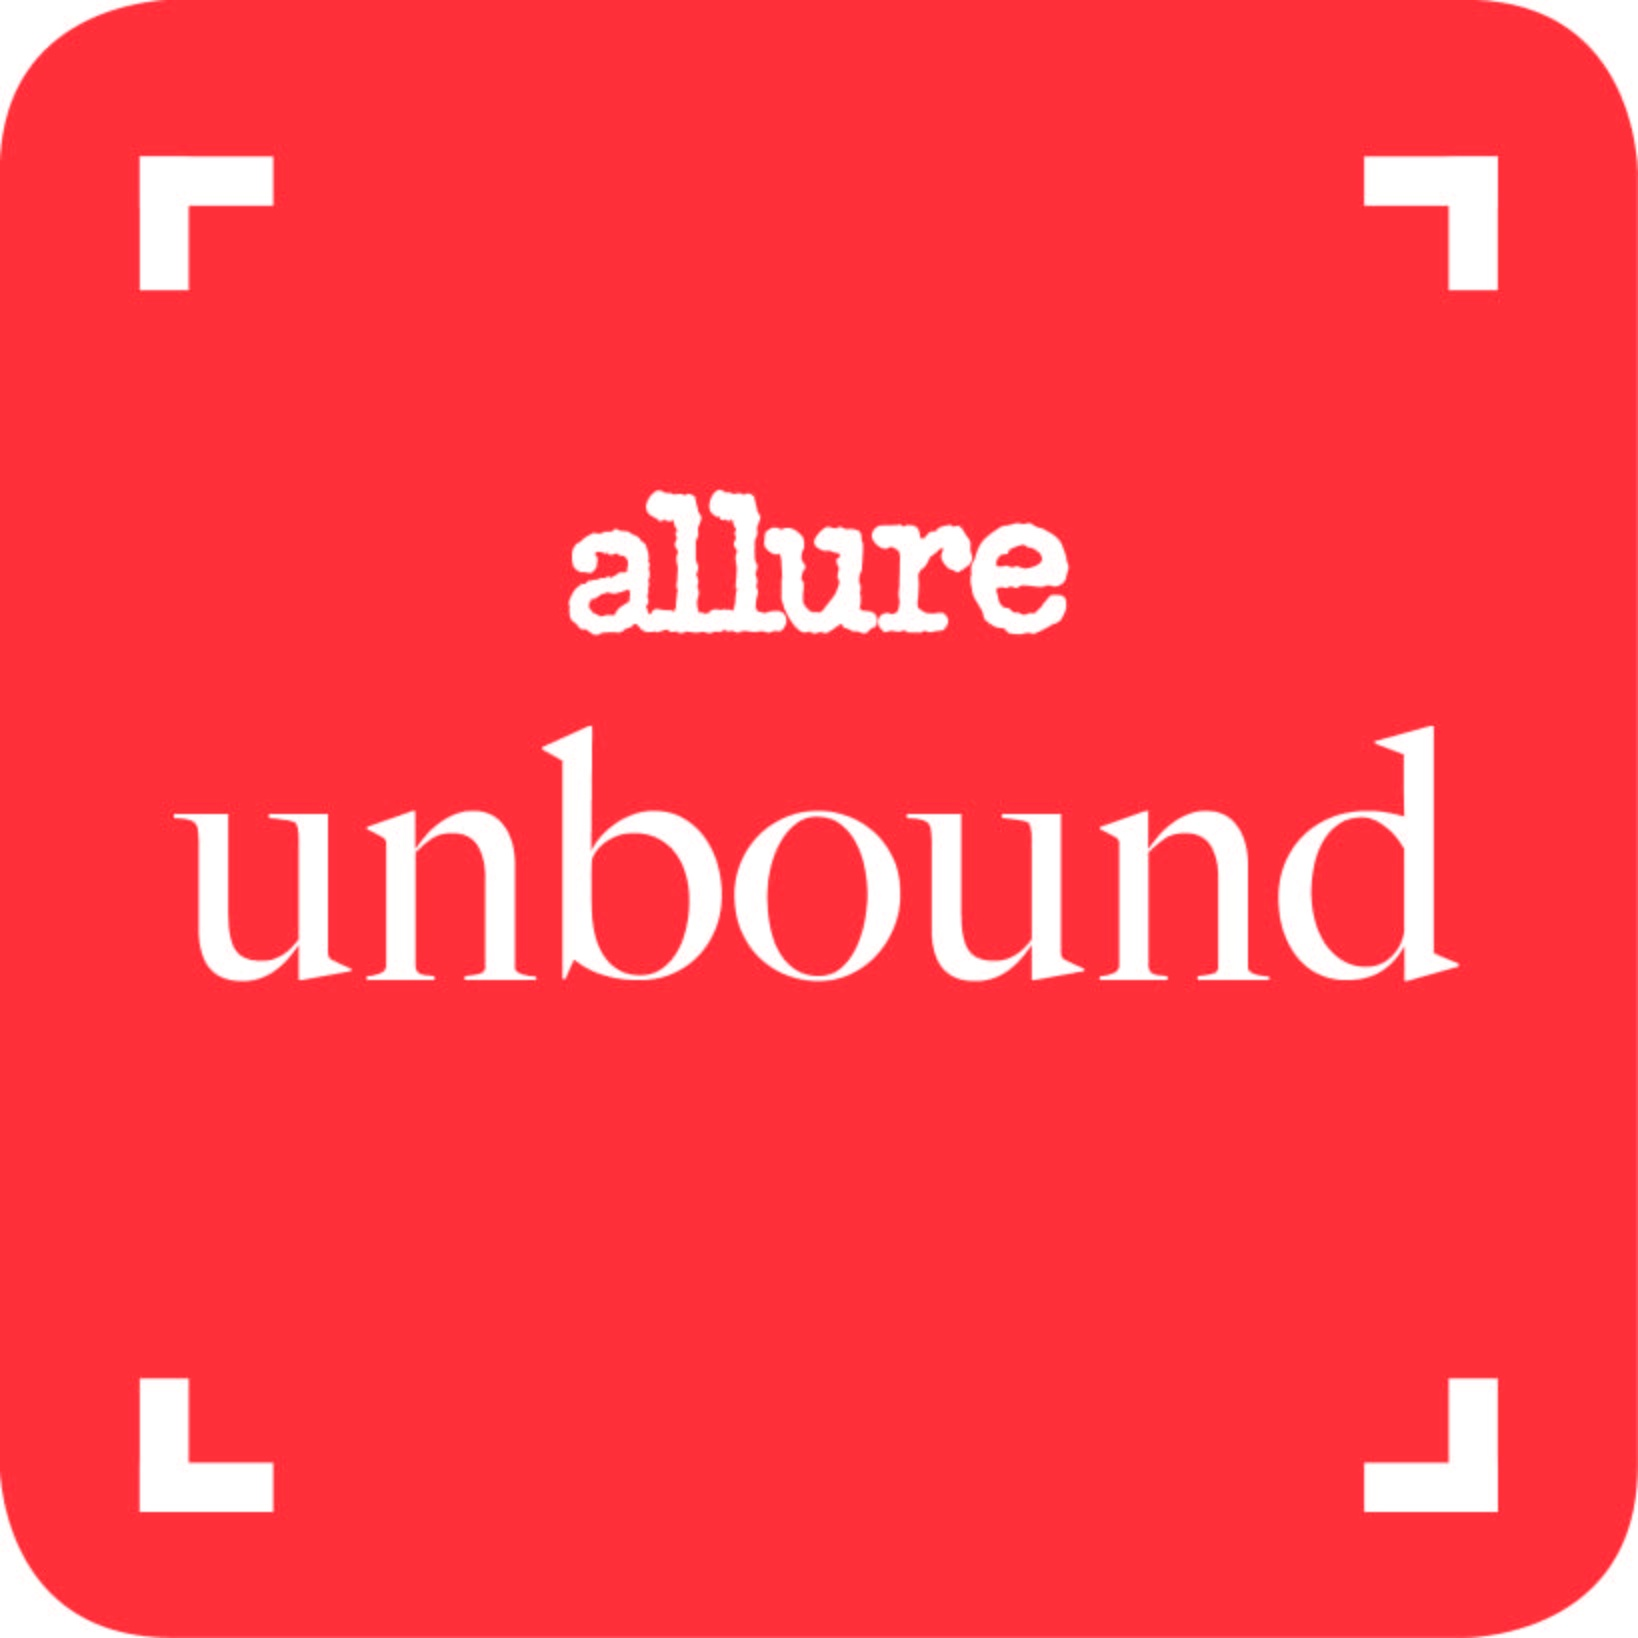 Image Media for Allure Unbound